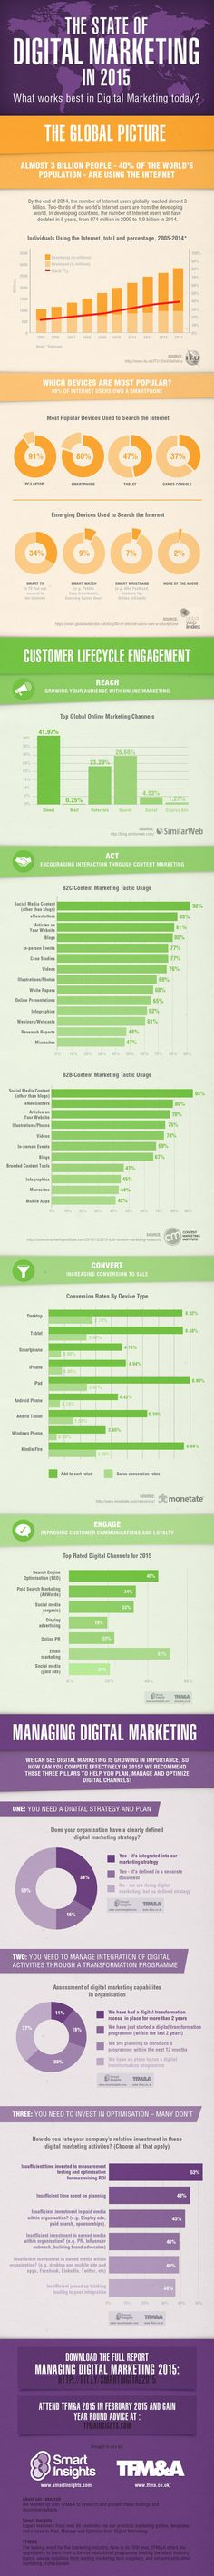 The Global State of Digital Marketing in 2015 #Infographic #digitalmarketing #digitalmarketing2015